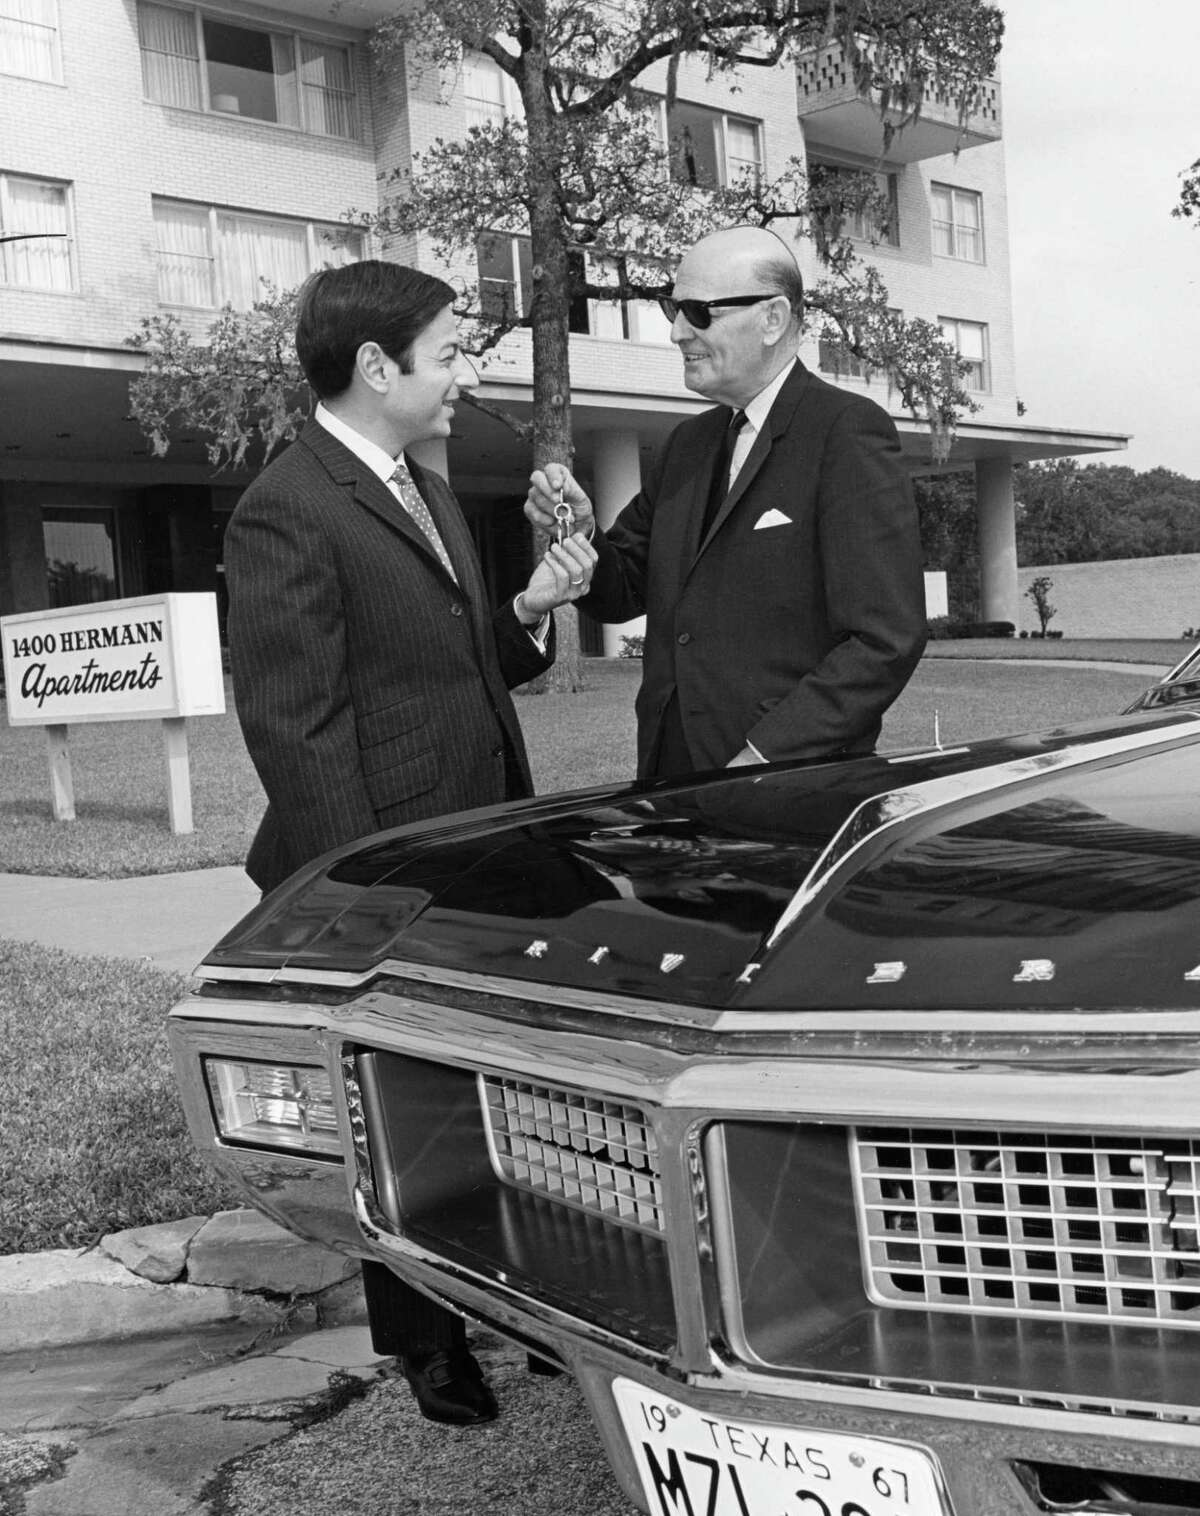 From the Oct. 1967 Houston Post: Houston symphony conductor Andre Previn, left, is riding in style while he is in town. Al Parker Buick owner Al Parker is shown giving him the keys to a new auto for his use while he is here.